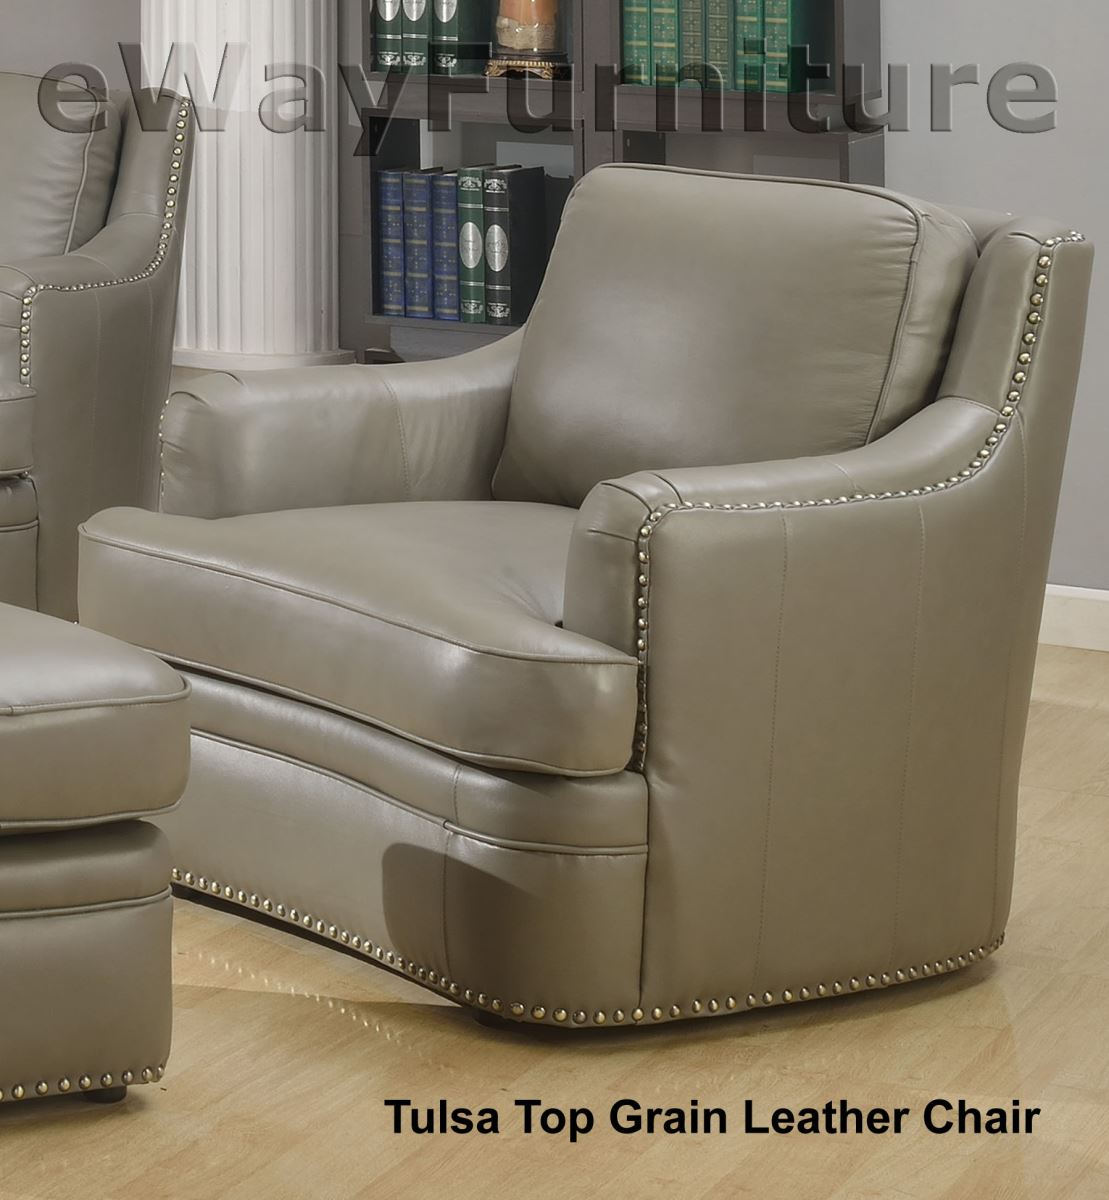 tulsa top grain leather chair in dark grey. Black Bedroom Furniture Sets. Home Design Ideas